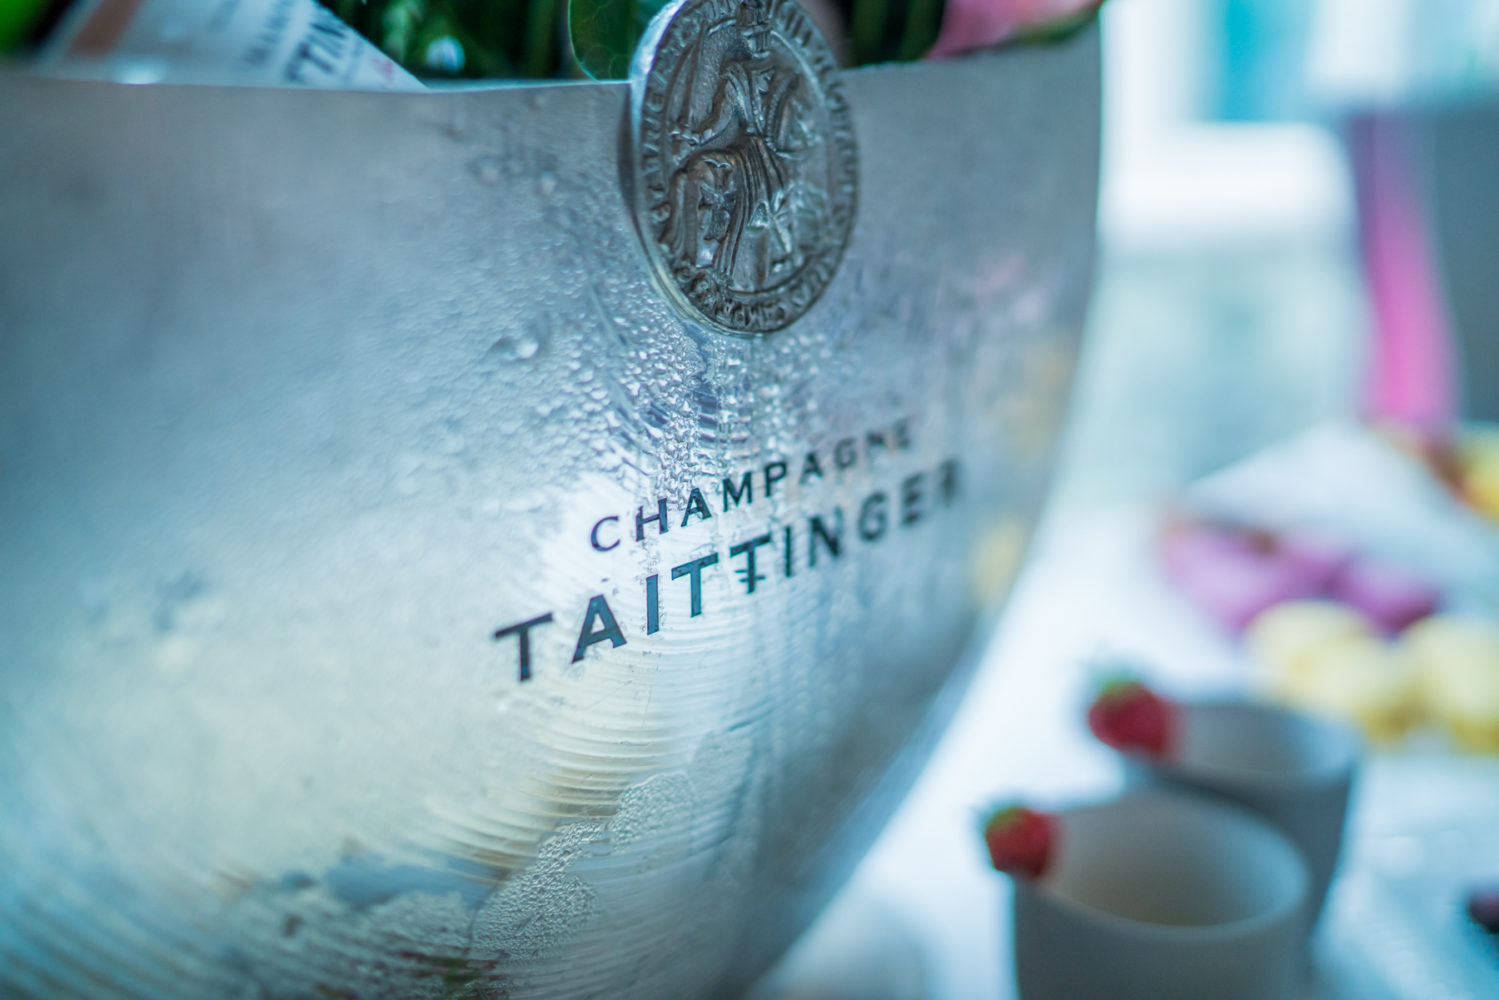 Concours of Elegance Announces Taittinger as Champagne Partner